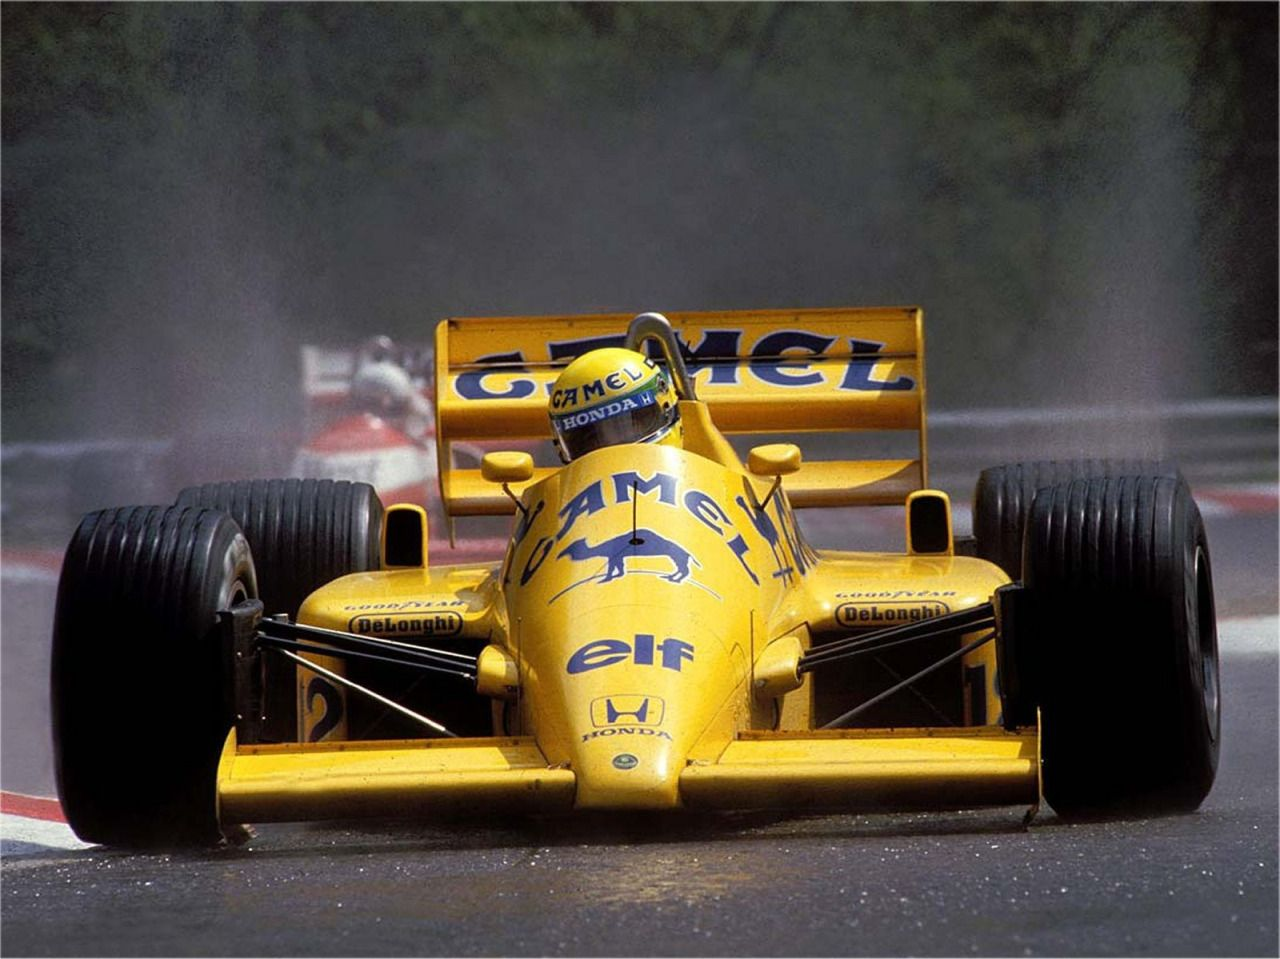 Formula 1 back in the good old days when tobacco products could ...